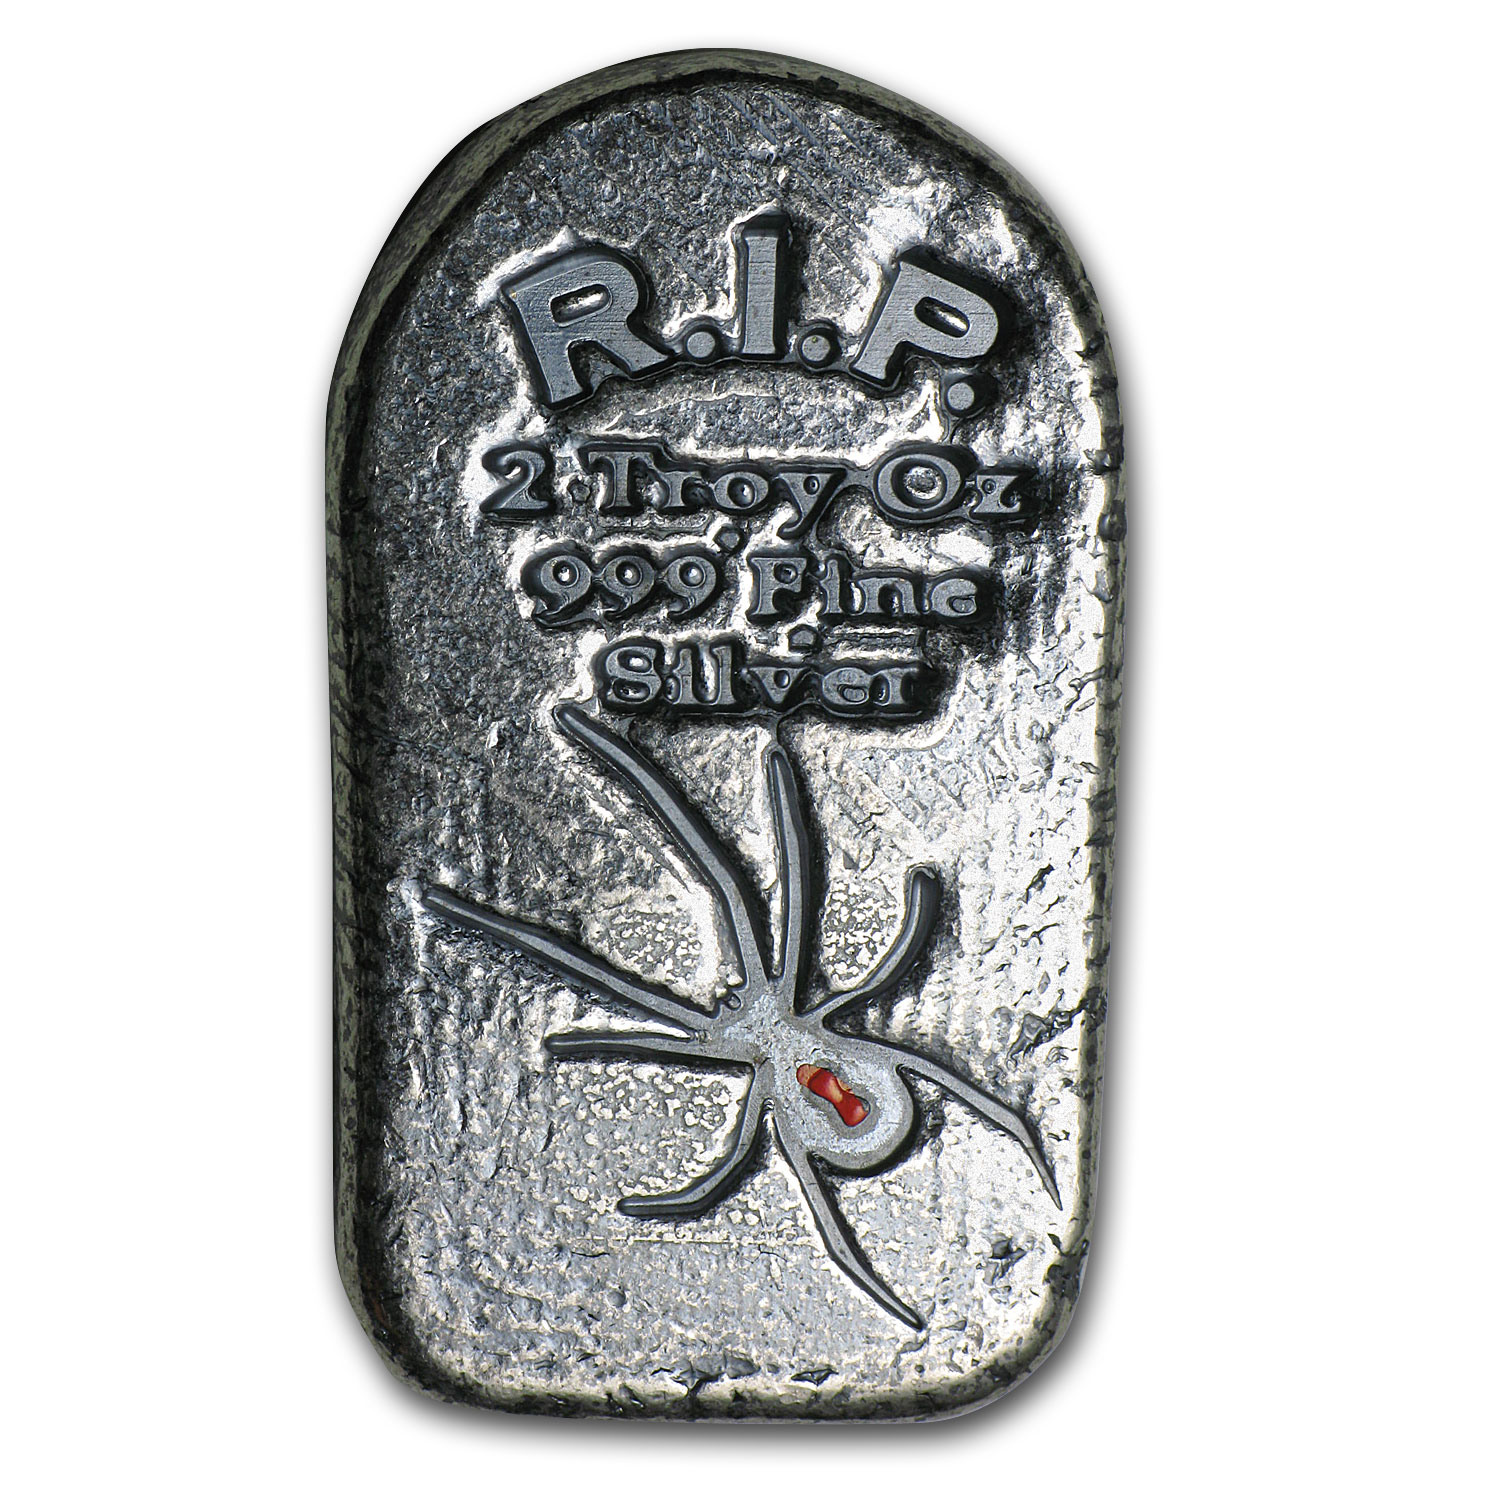 2 oz Silver Tombstone - Monarch Precious Metals (Black Widow)